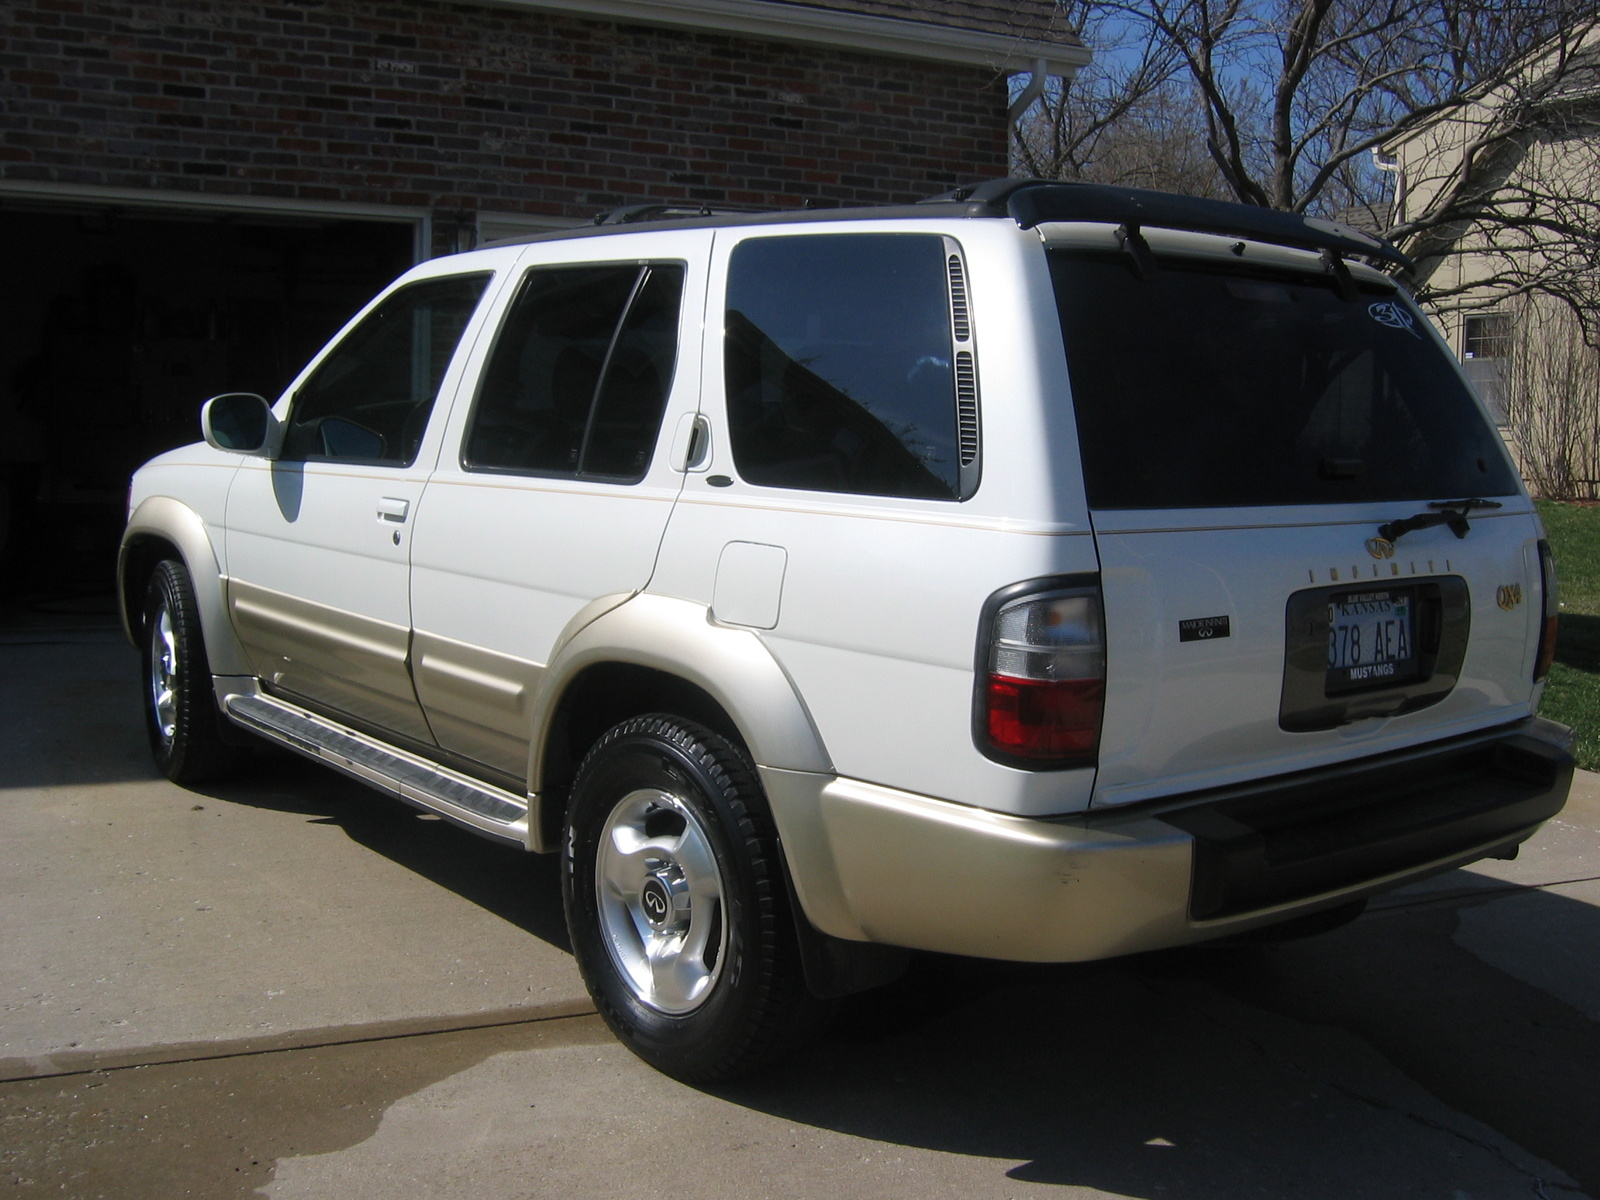 Picture of 2000 Infiniti QX4 4 Dr STD 4WD SUV